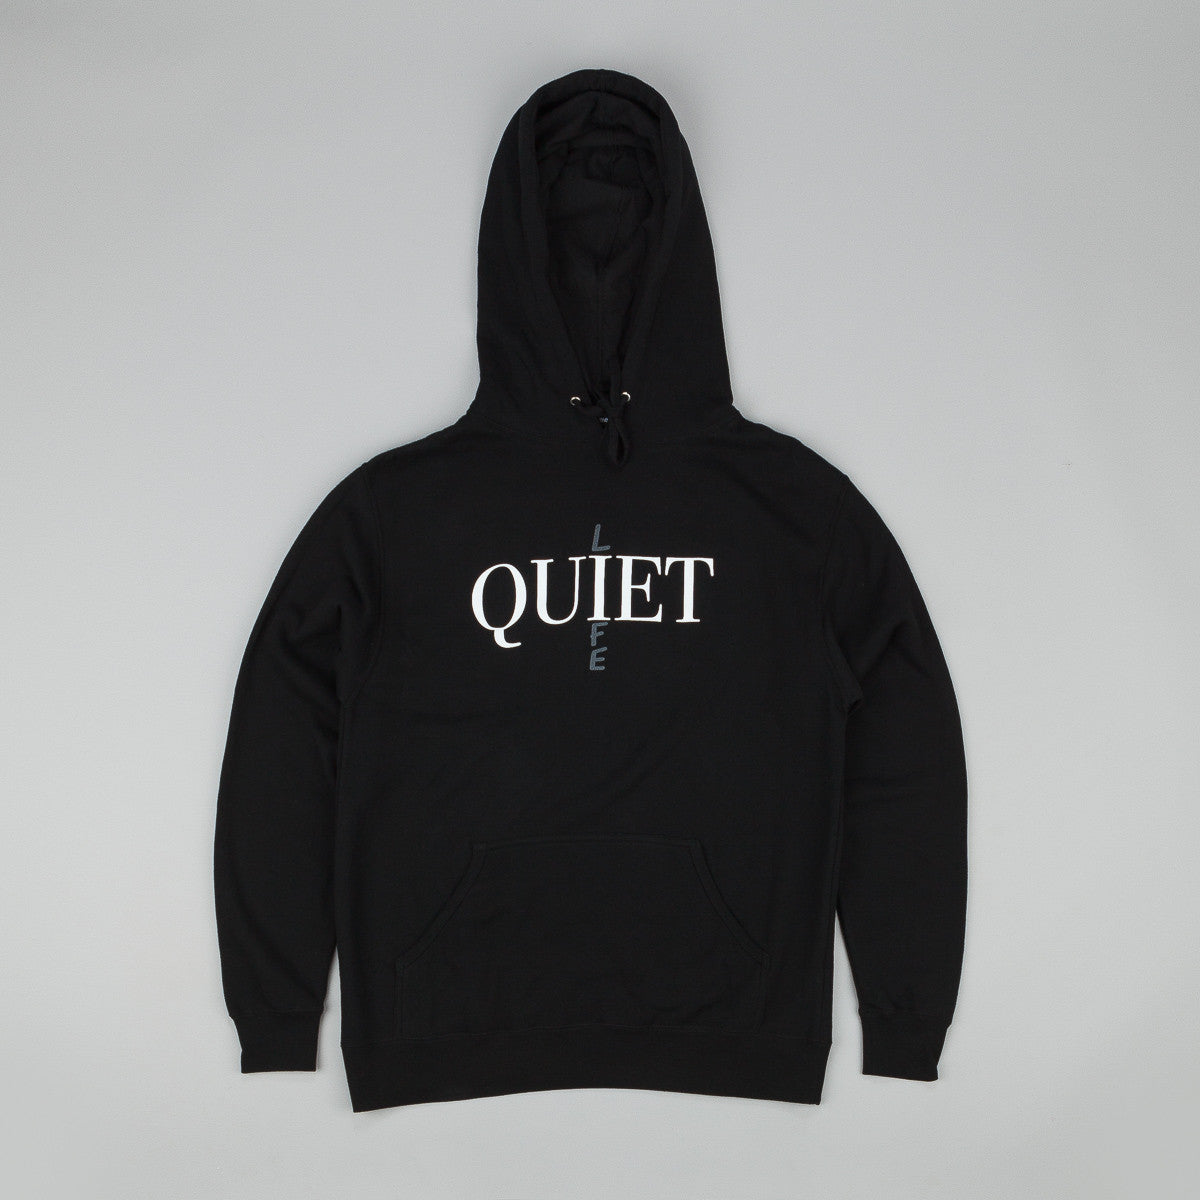 The Quiet Life Bodoni Hooded Sweatshirt